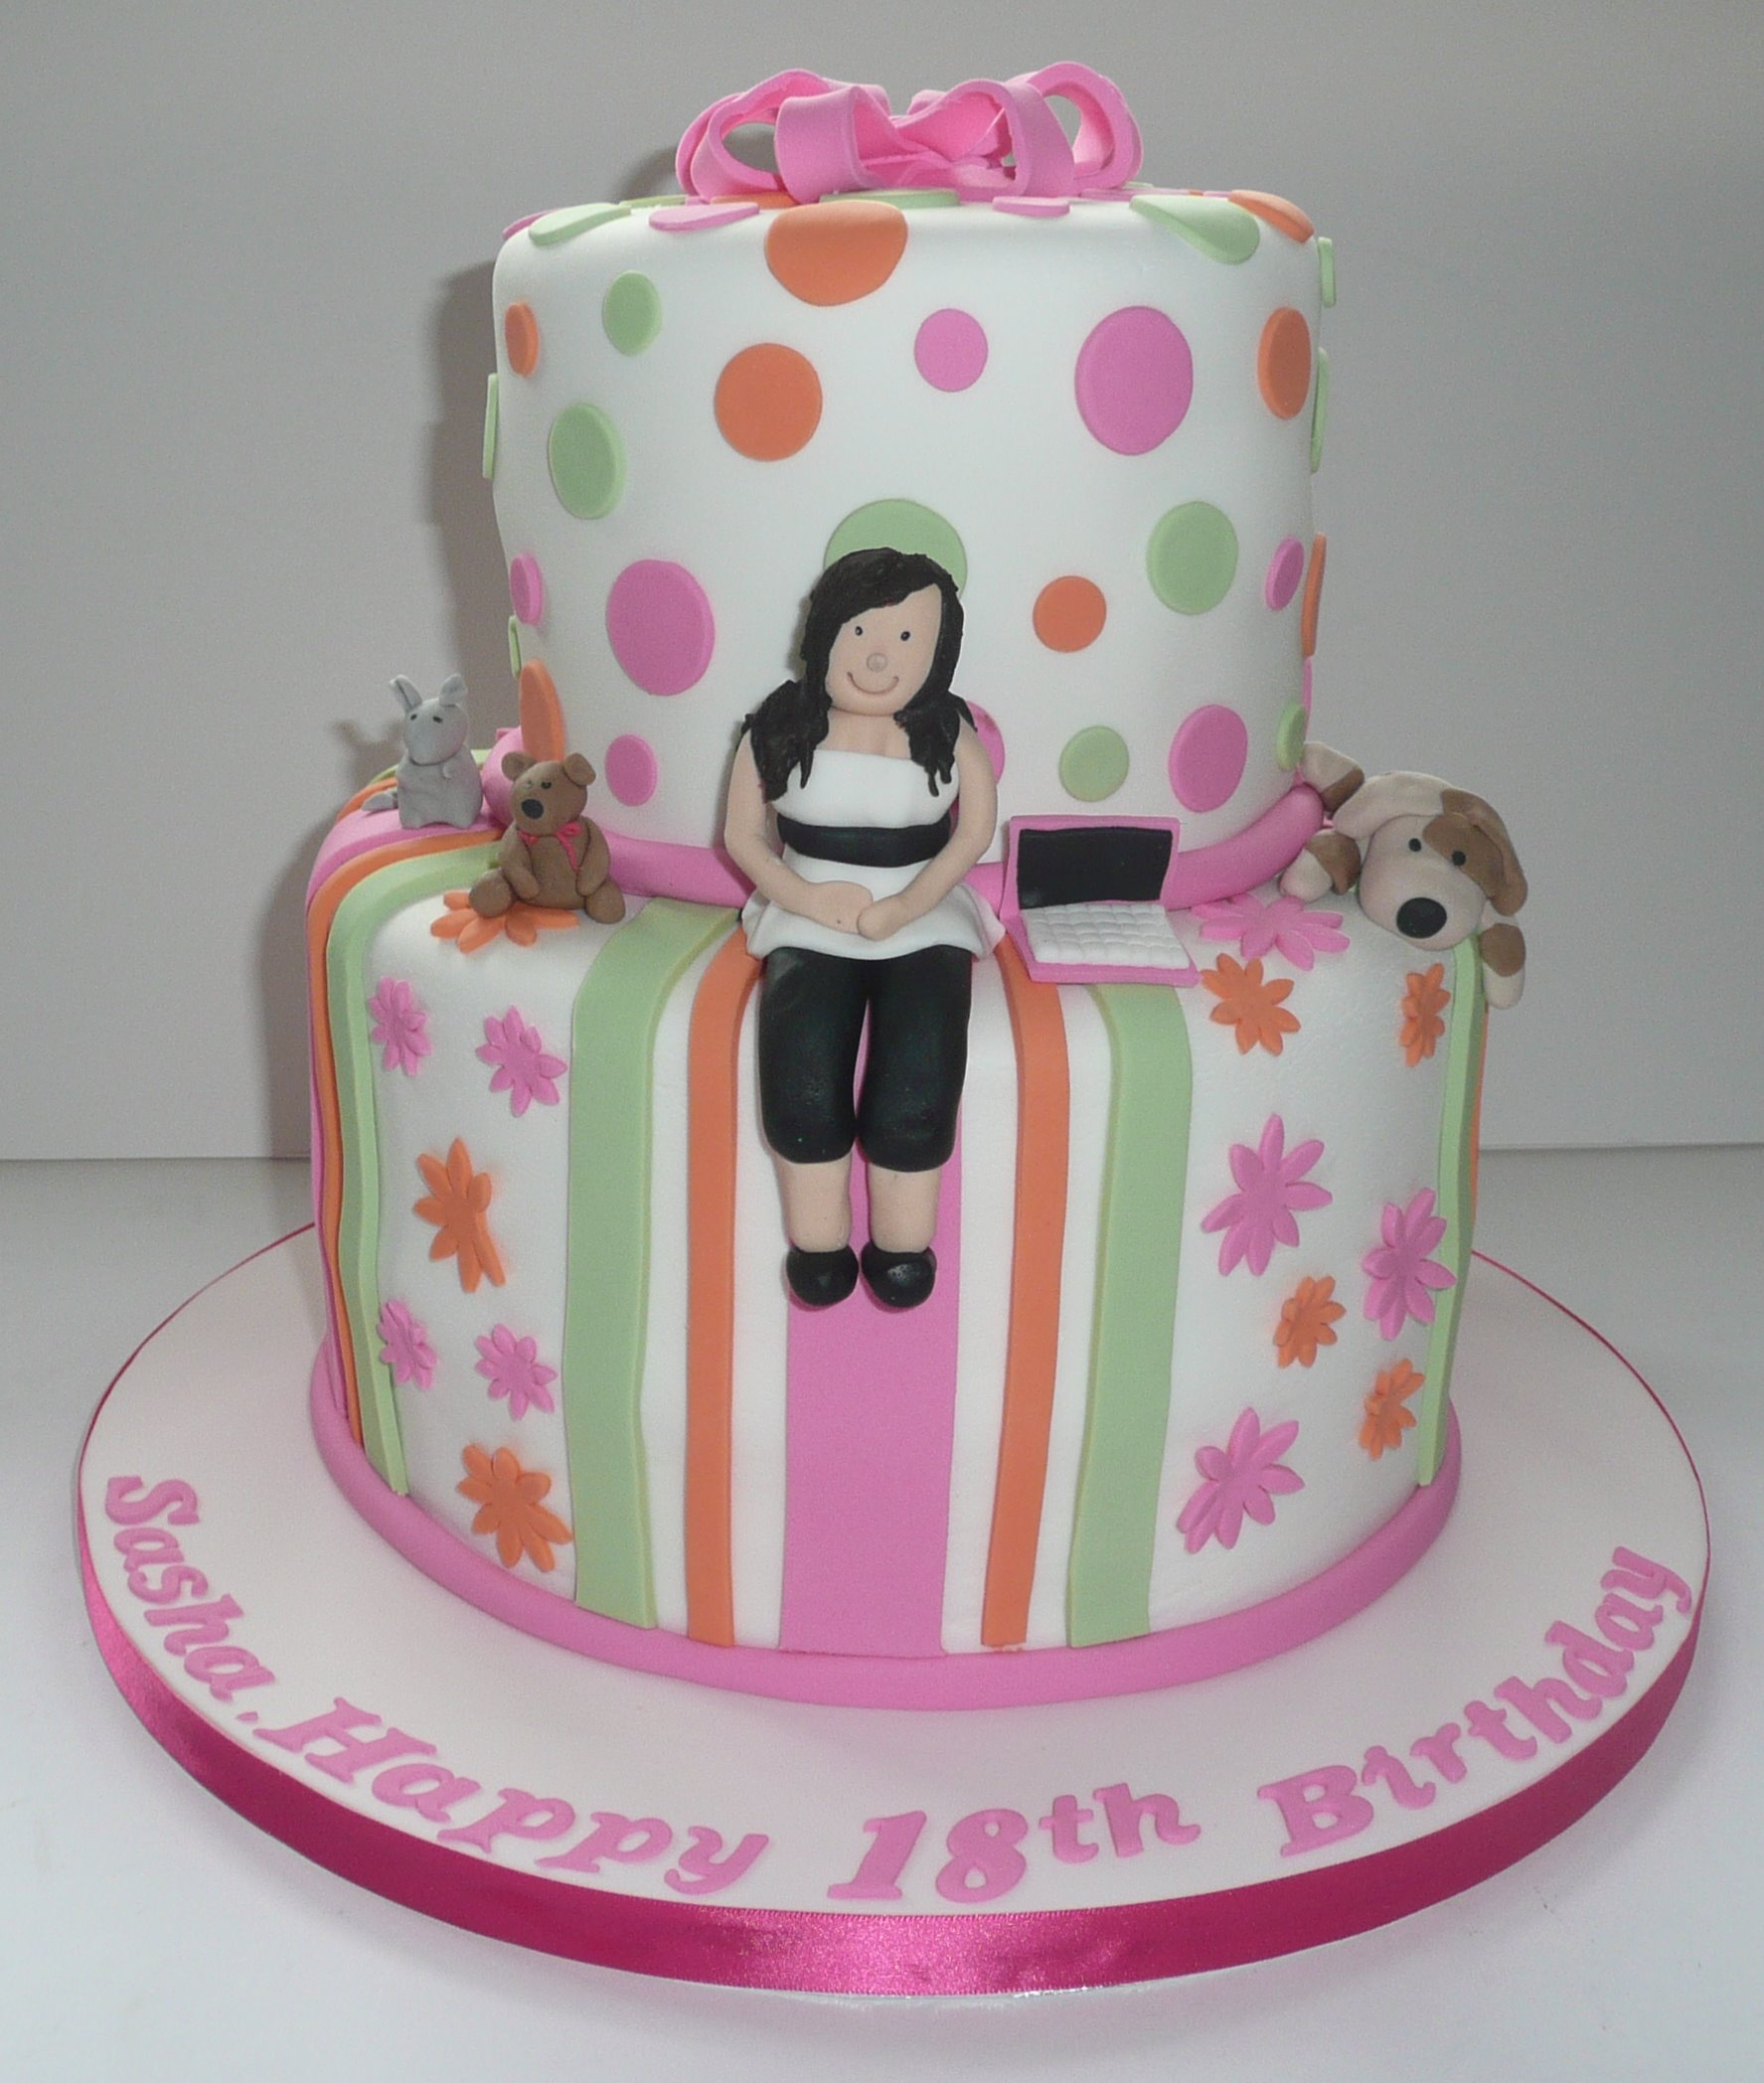 18Th Birthday Cake Designs 10 Funny 18th Birthday Cakes For Women Photo 18th Birthday Cake